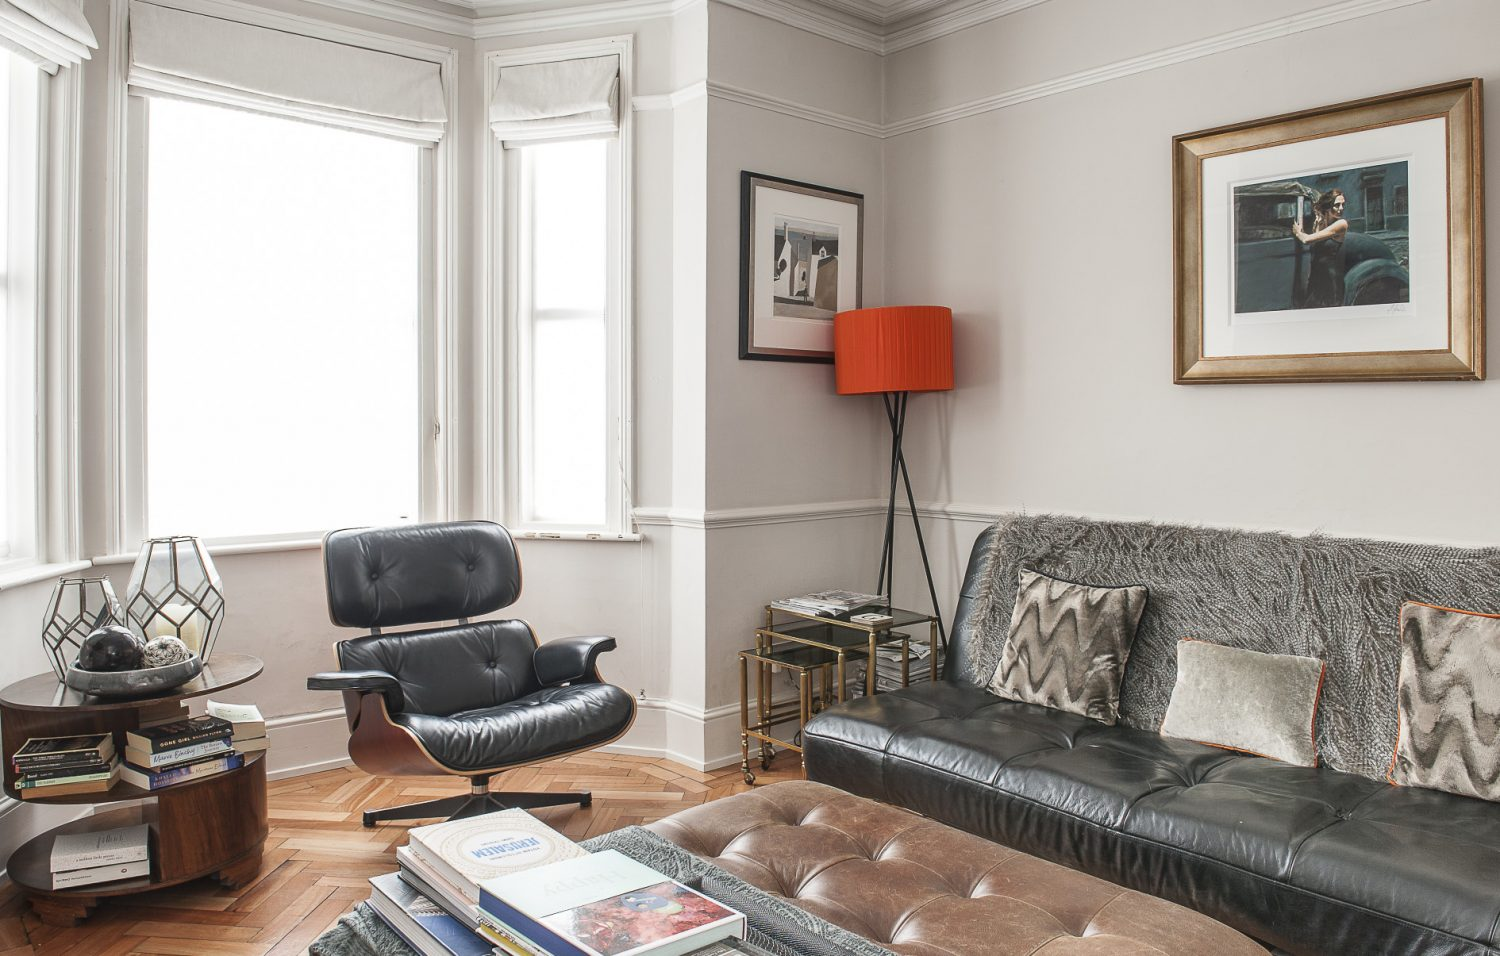 Justine describes the living room, which is at the front of the house, as a 'work in progress'. Even so, the subtle paint scheme and signature pieces of furniture, including a Charles Eames chair and a Hans Wegner rocker, give it understated style